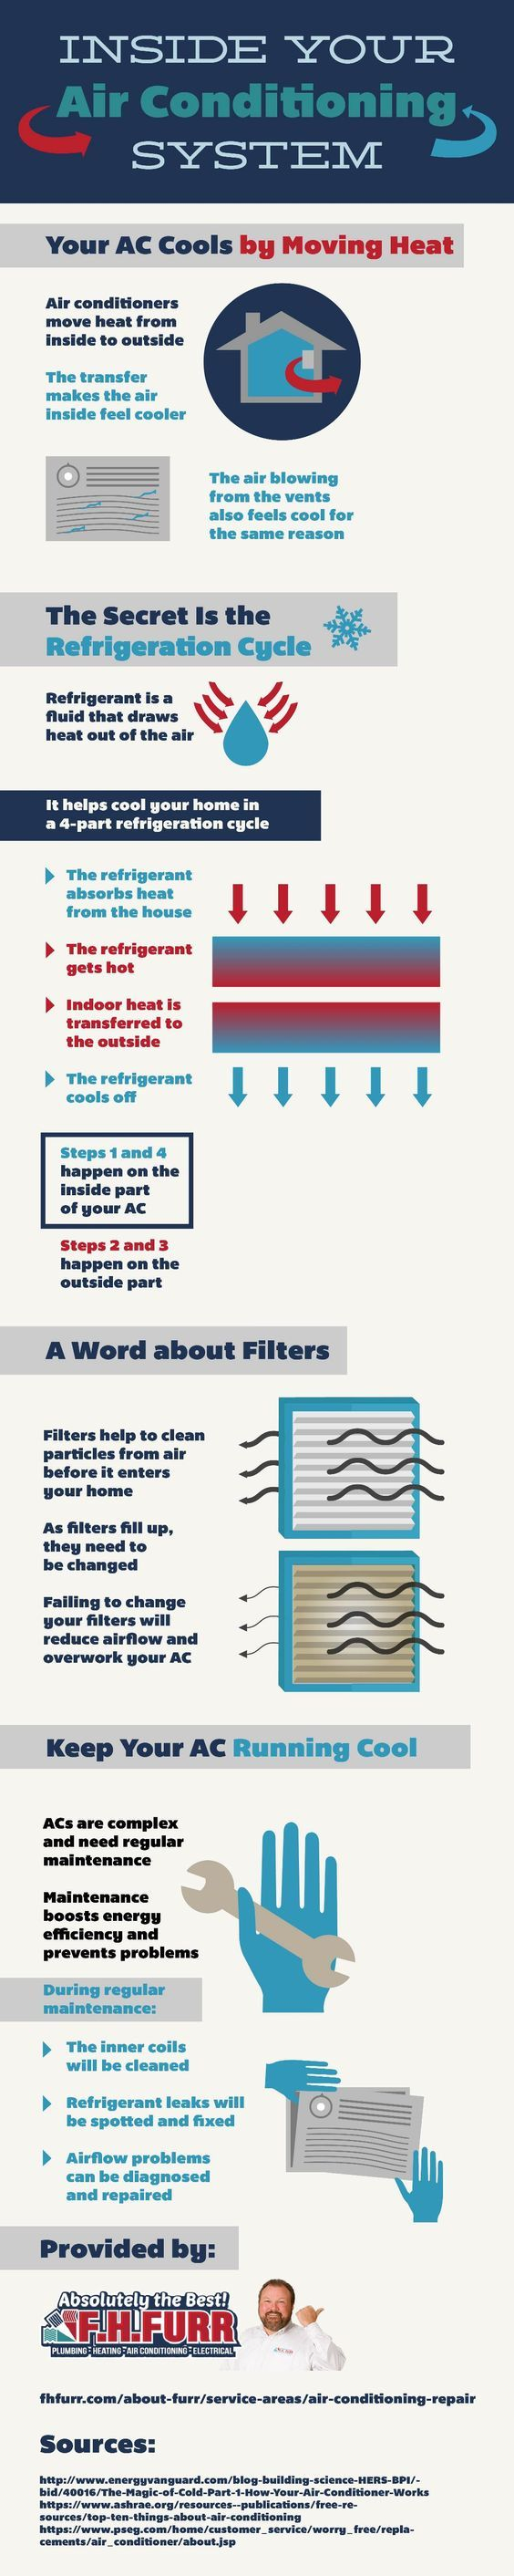 Inside Your Air Conditioning System (infographic)